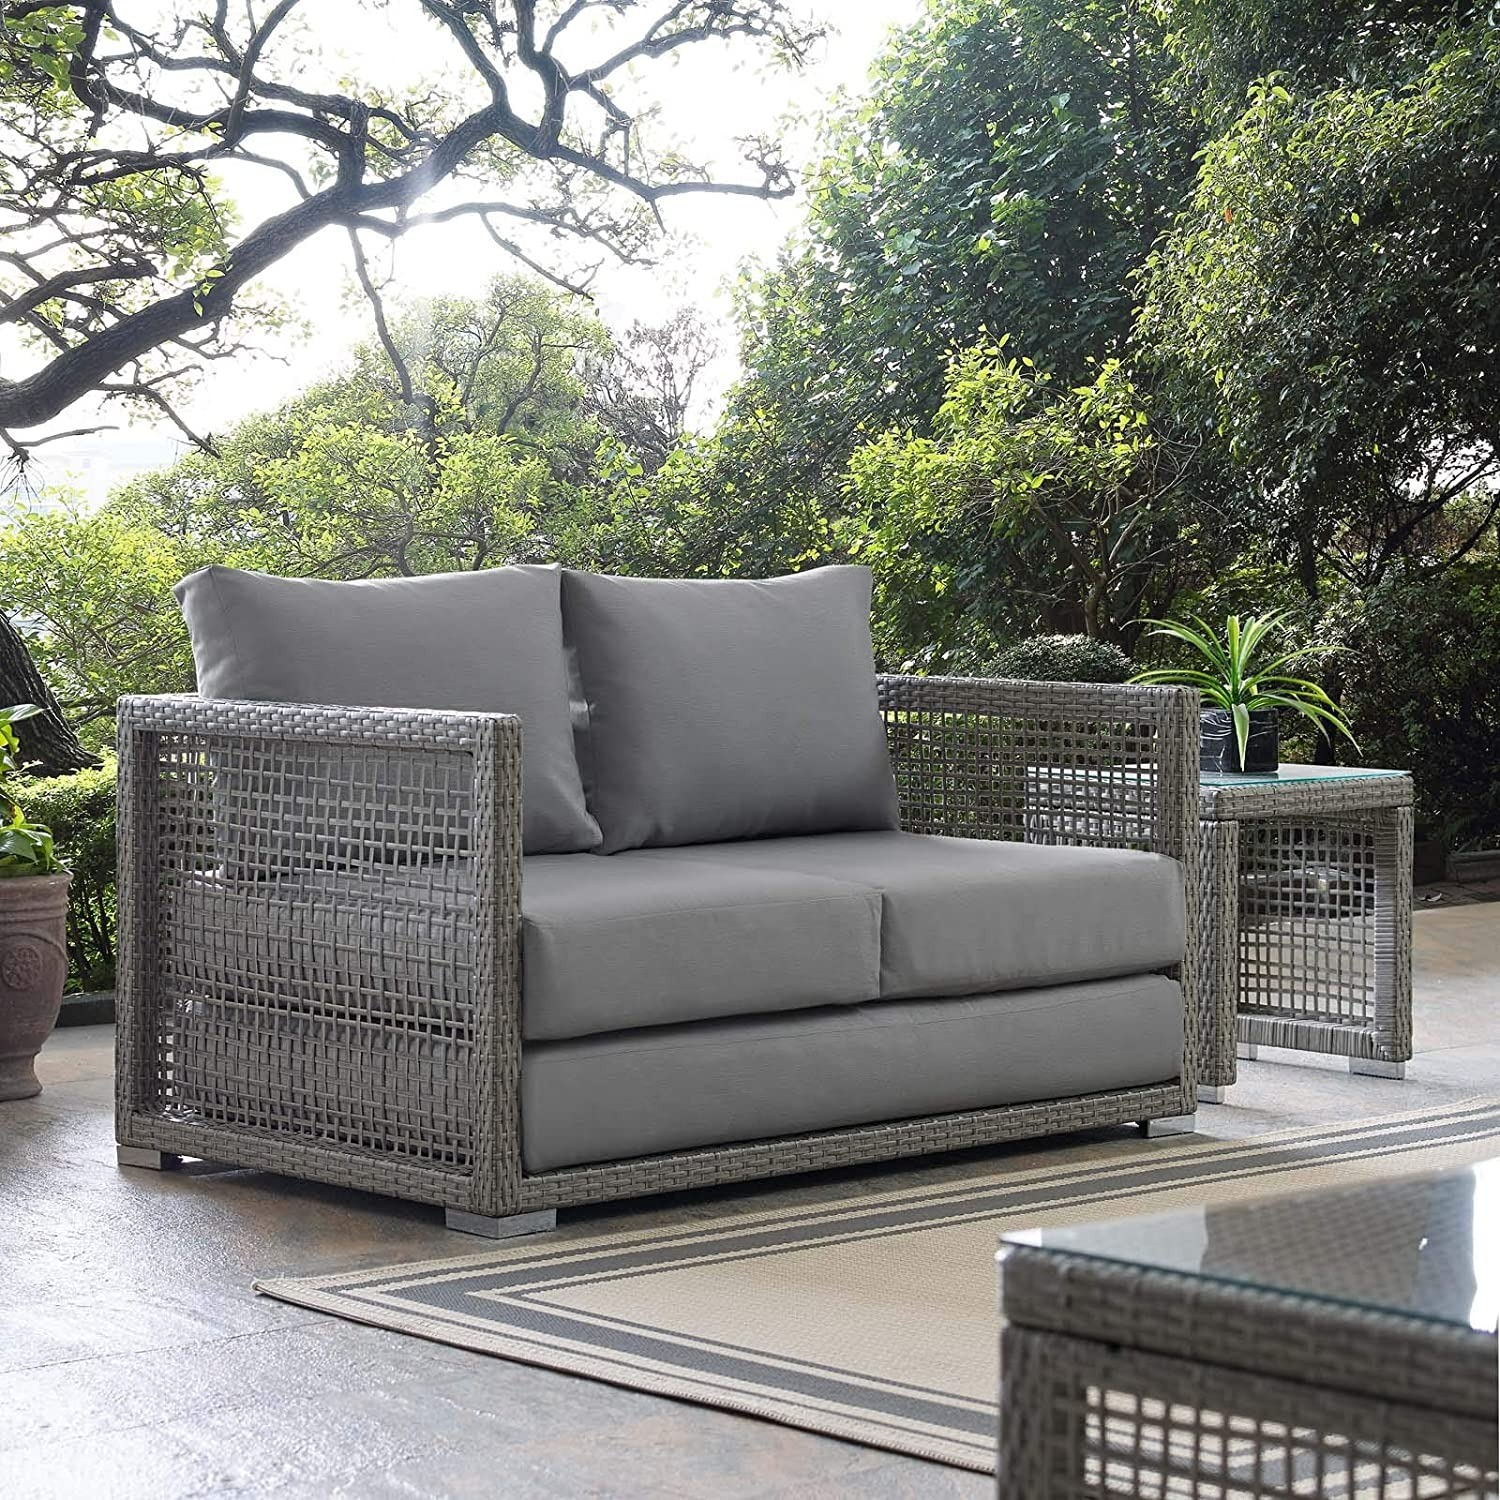 Outdoor Loveseat In Gray Rattan Weave Frame - image-7